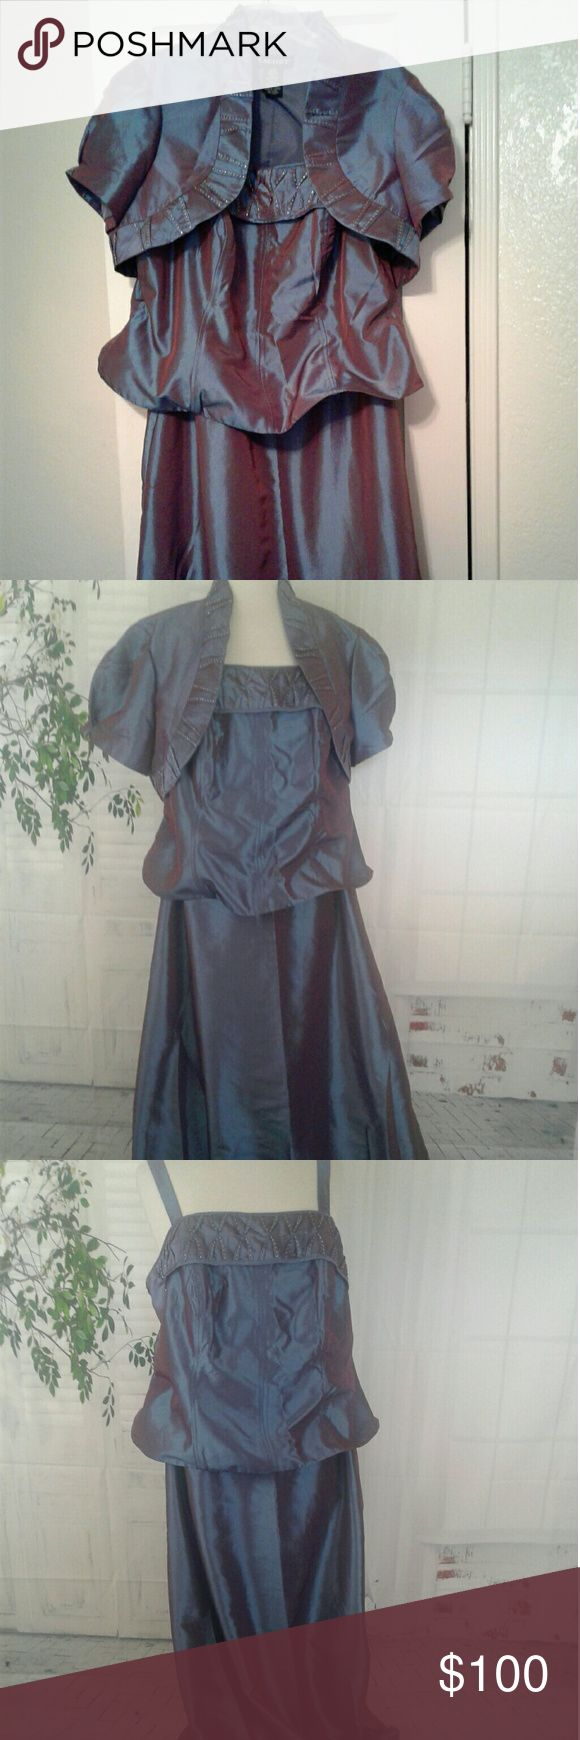 """Cachet Formal Dress Size 16W. Owner purchased new an wore once. Length approx 52"""" Gorgeous two piece formal dress. Sleeveless dress with a short jacket, short sleeves. Trim on jacket an neckline on dress have silver sequin accents. Top portion of dress is a pedalum  type. Zips up the back. Fabric has a halogen color effect. Questions, feel free to ask. Cachet Dresses Maxi"""